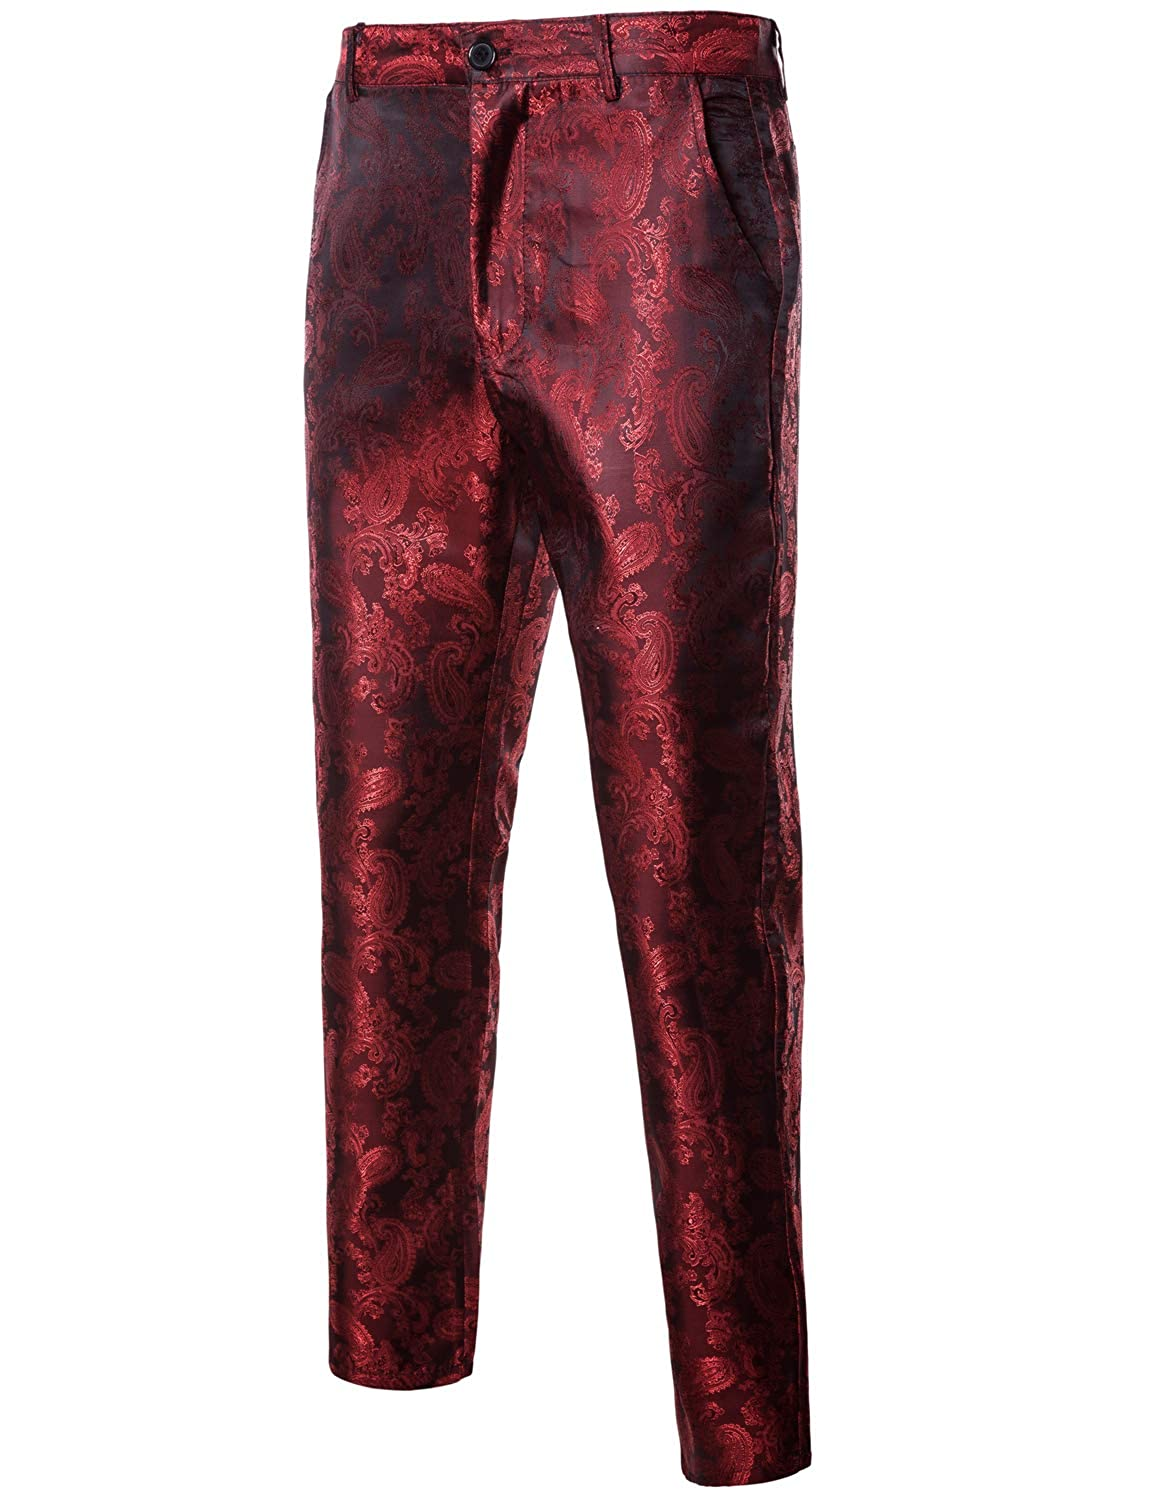 ZEROYAA Mens Casual Paisley Design Flat Front Suit Pant/Straight Leg Trousers